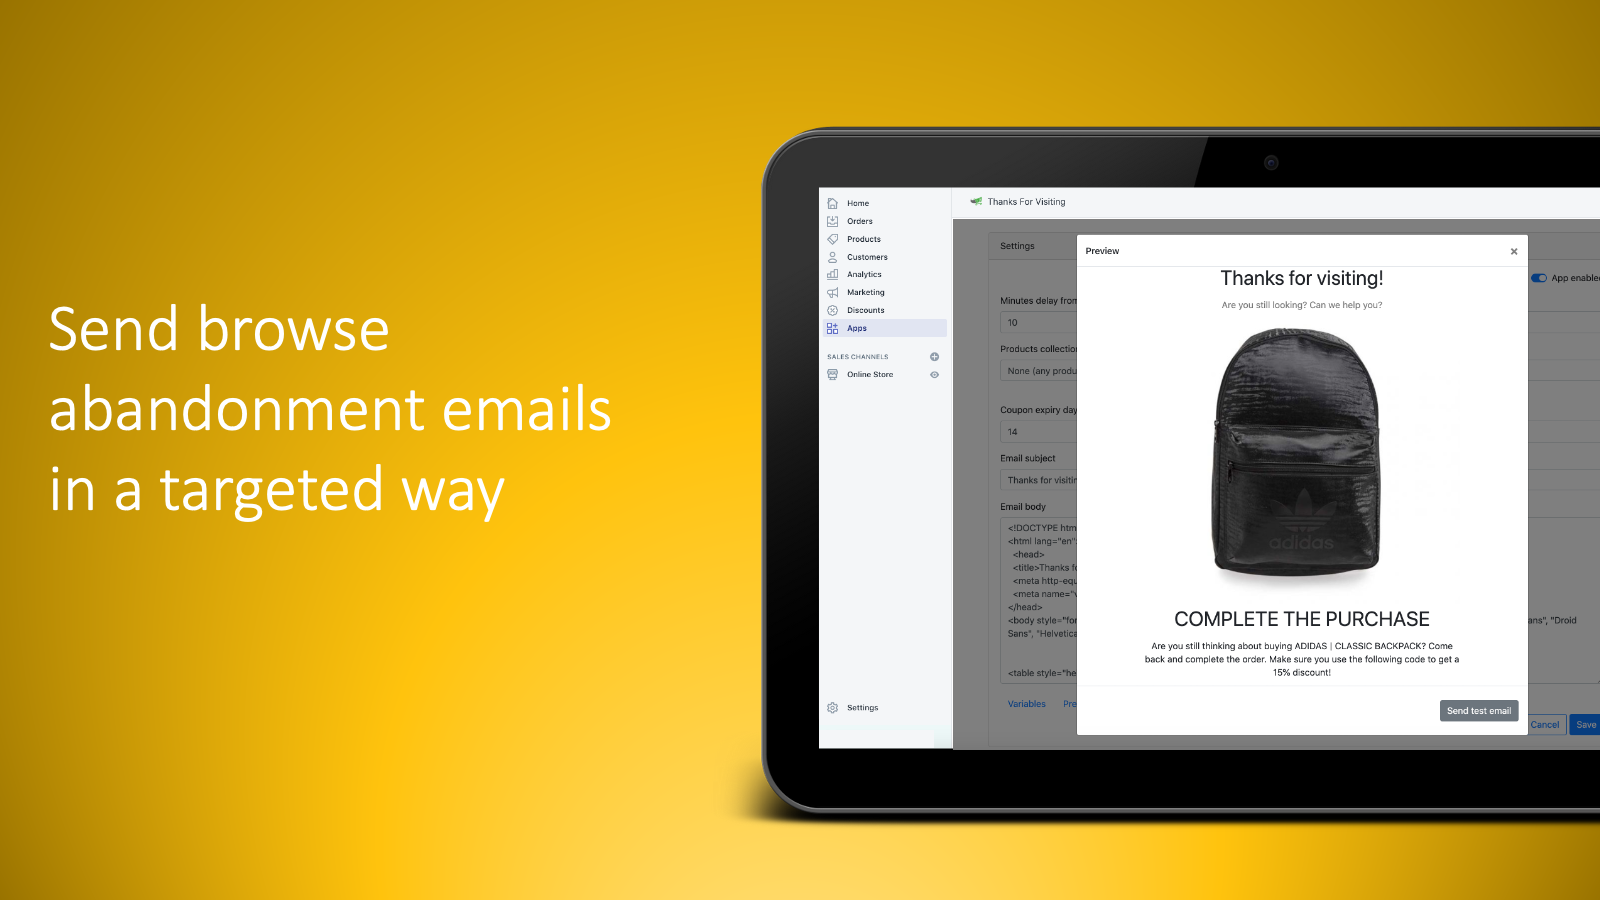 Send browse abandonment emails in a targeted way